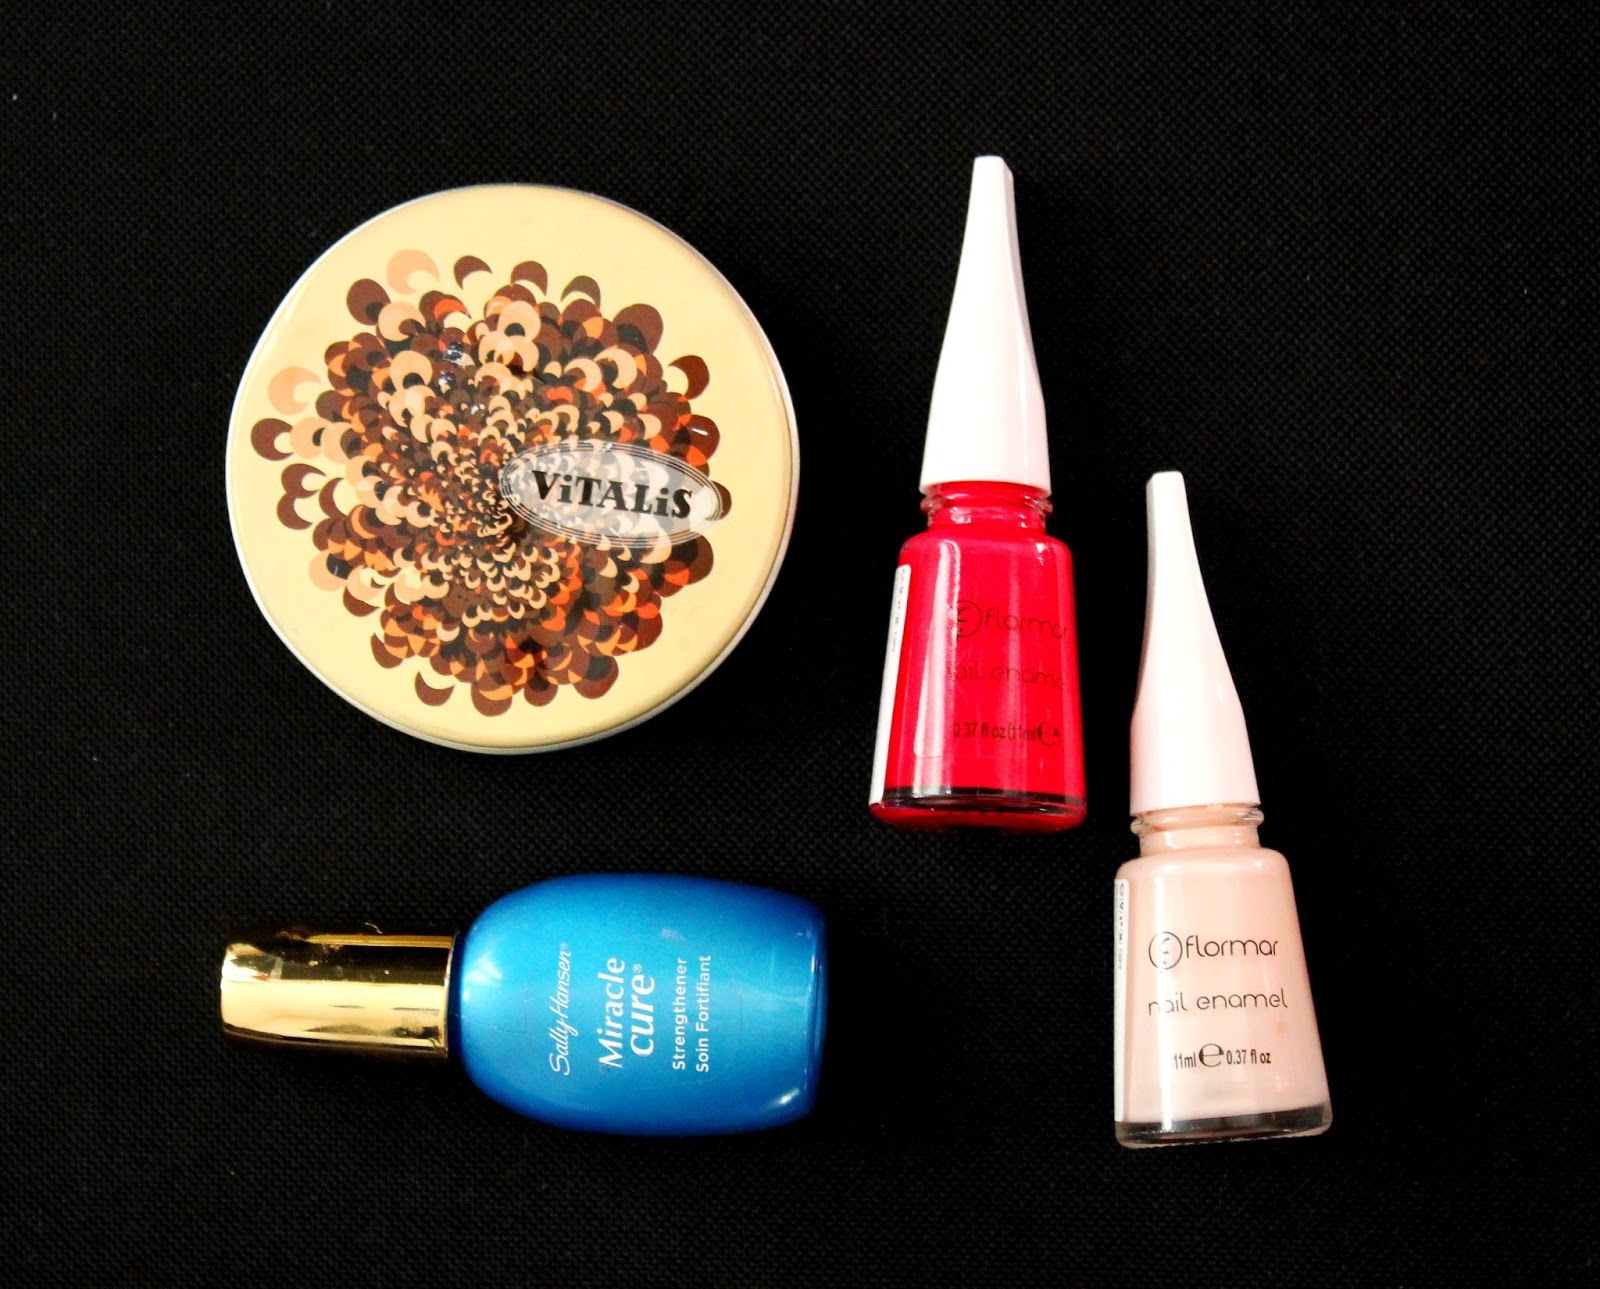 #favourites #blog #picture #vitalis #sallyhansen #mircle #cure #flormar #nail #polish #steghtener #hand #care #cosmetics